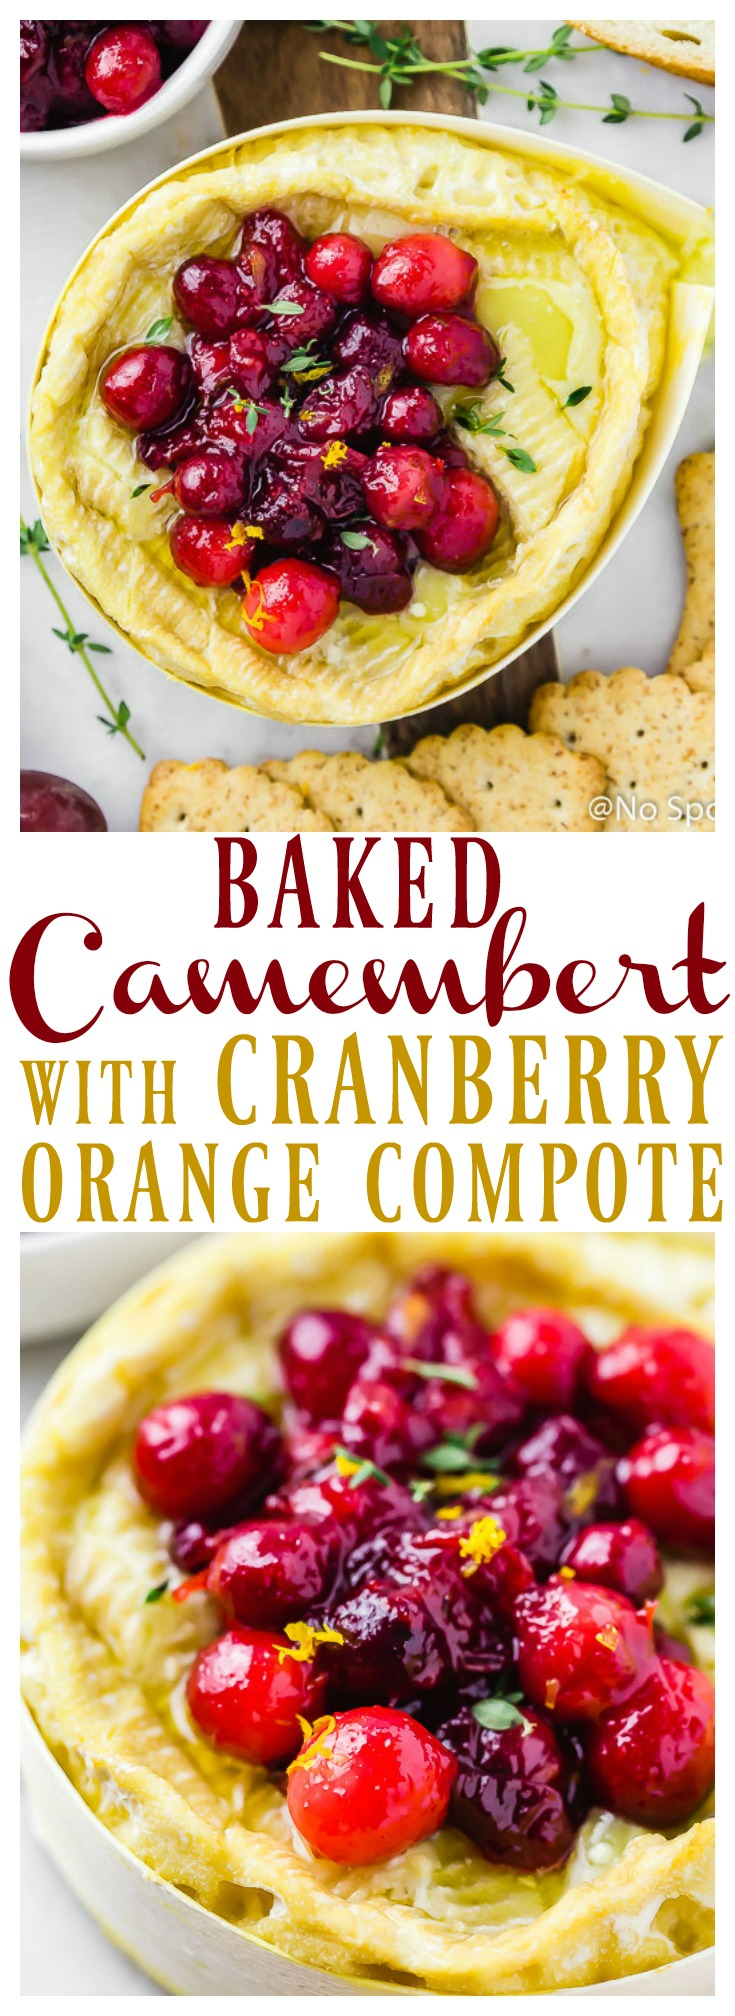 Baked Camembert with Cranberry & Orange Compote + recipe video   Warm, oozy Baked Camembert topped with Cranberry & Orange Compote is easy, yet elegant and guaranteed to please! Add this festive and fun appetizer to your holiday line up!  #easy #holiday #Christmas #NewYear #appetizer #cheese #camembert #Brie #baked #compote #cranberry #orange #recipe #vegetarian